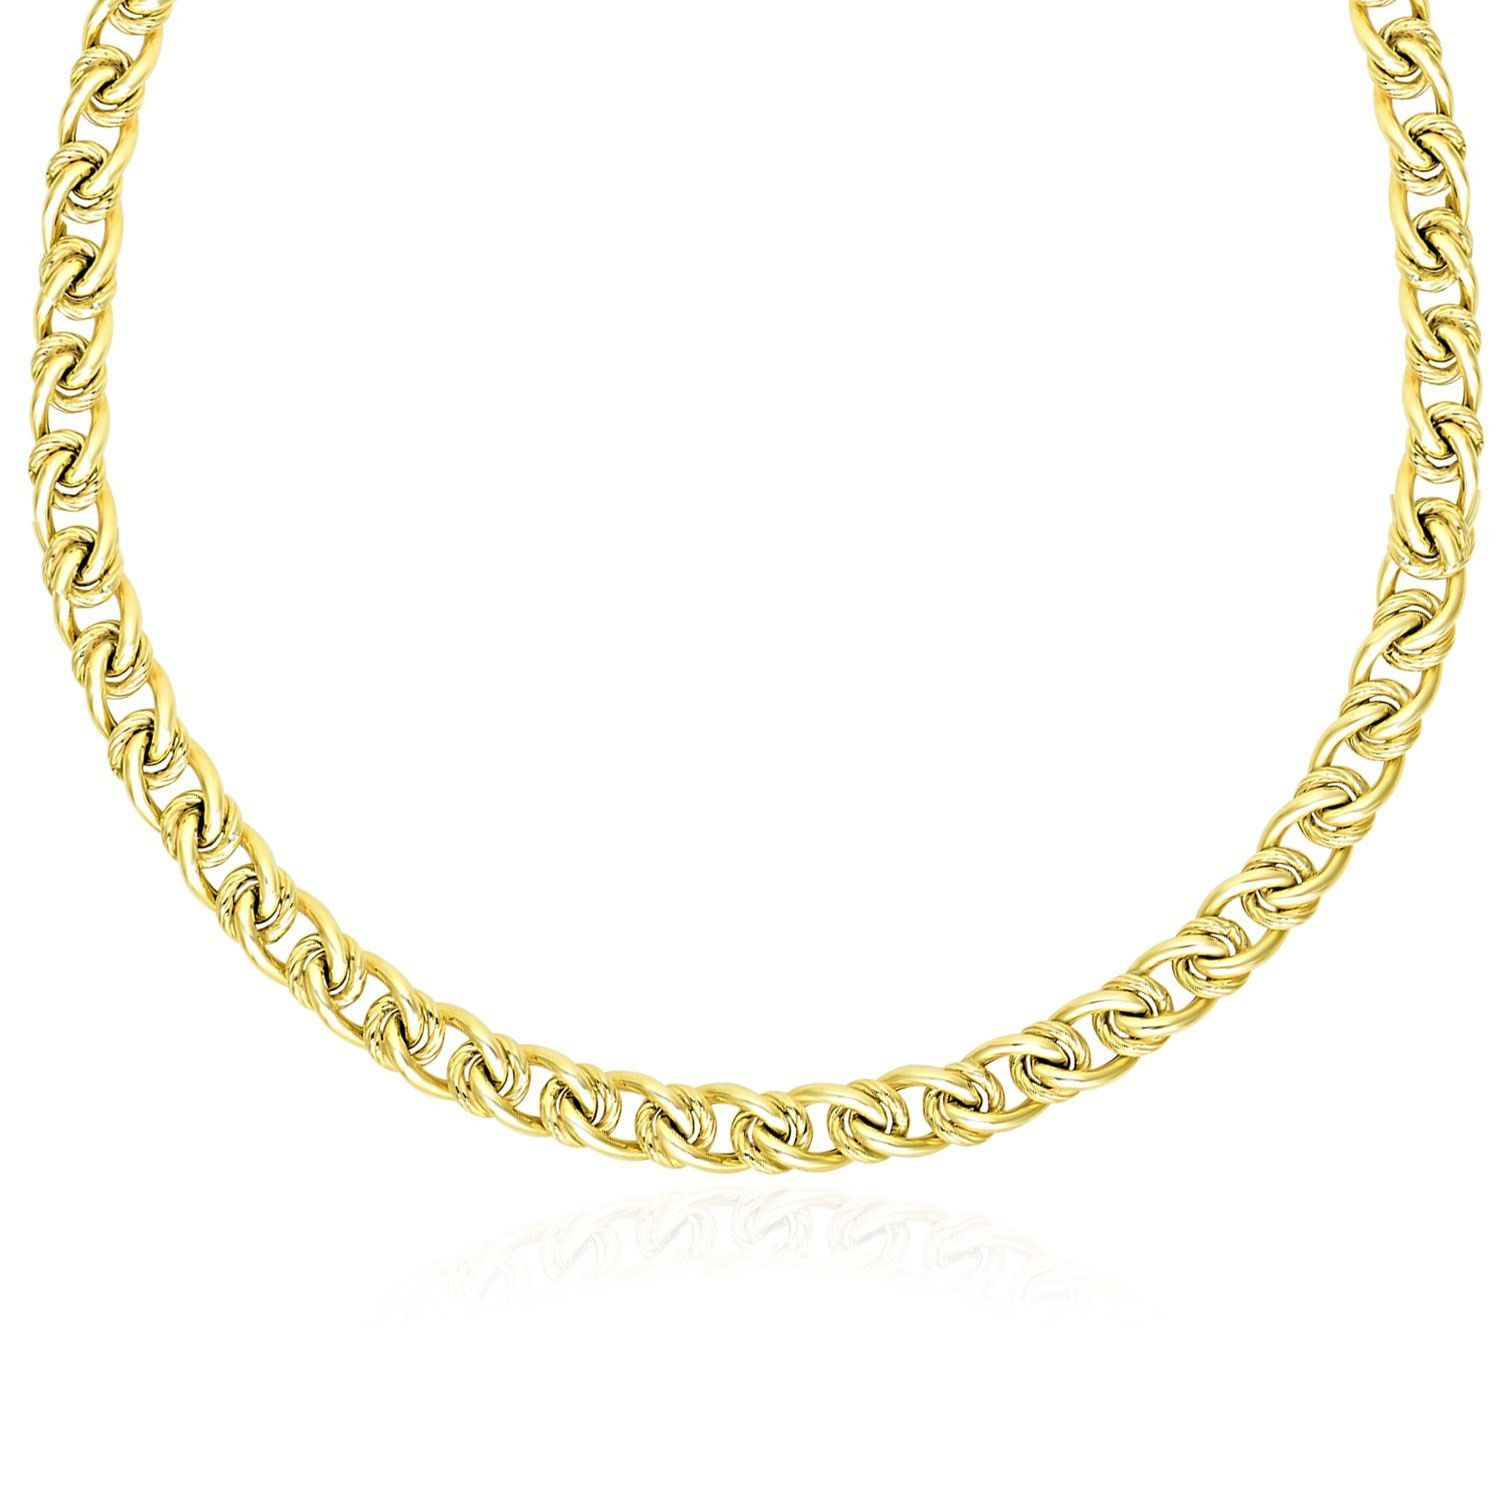 K yellow gold textured round and oval interlaced link bracelet